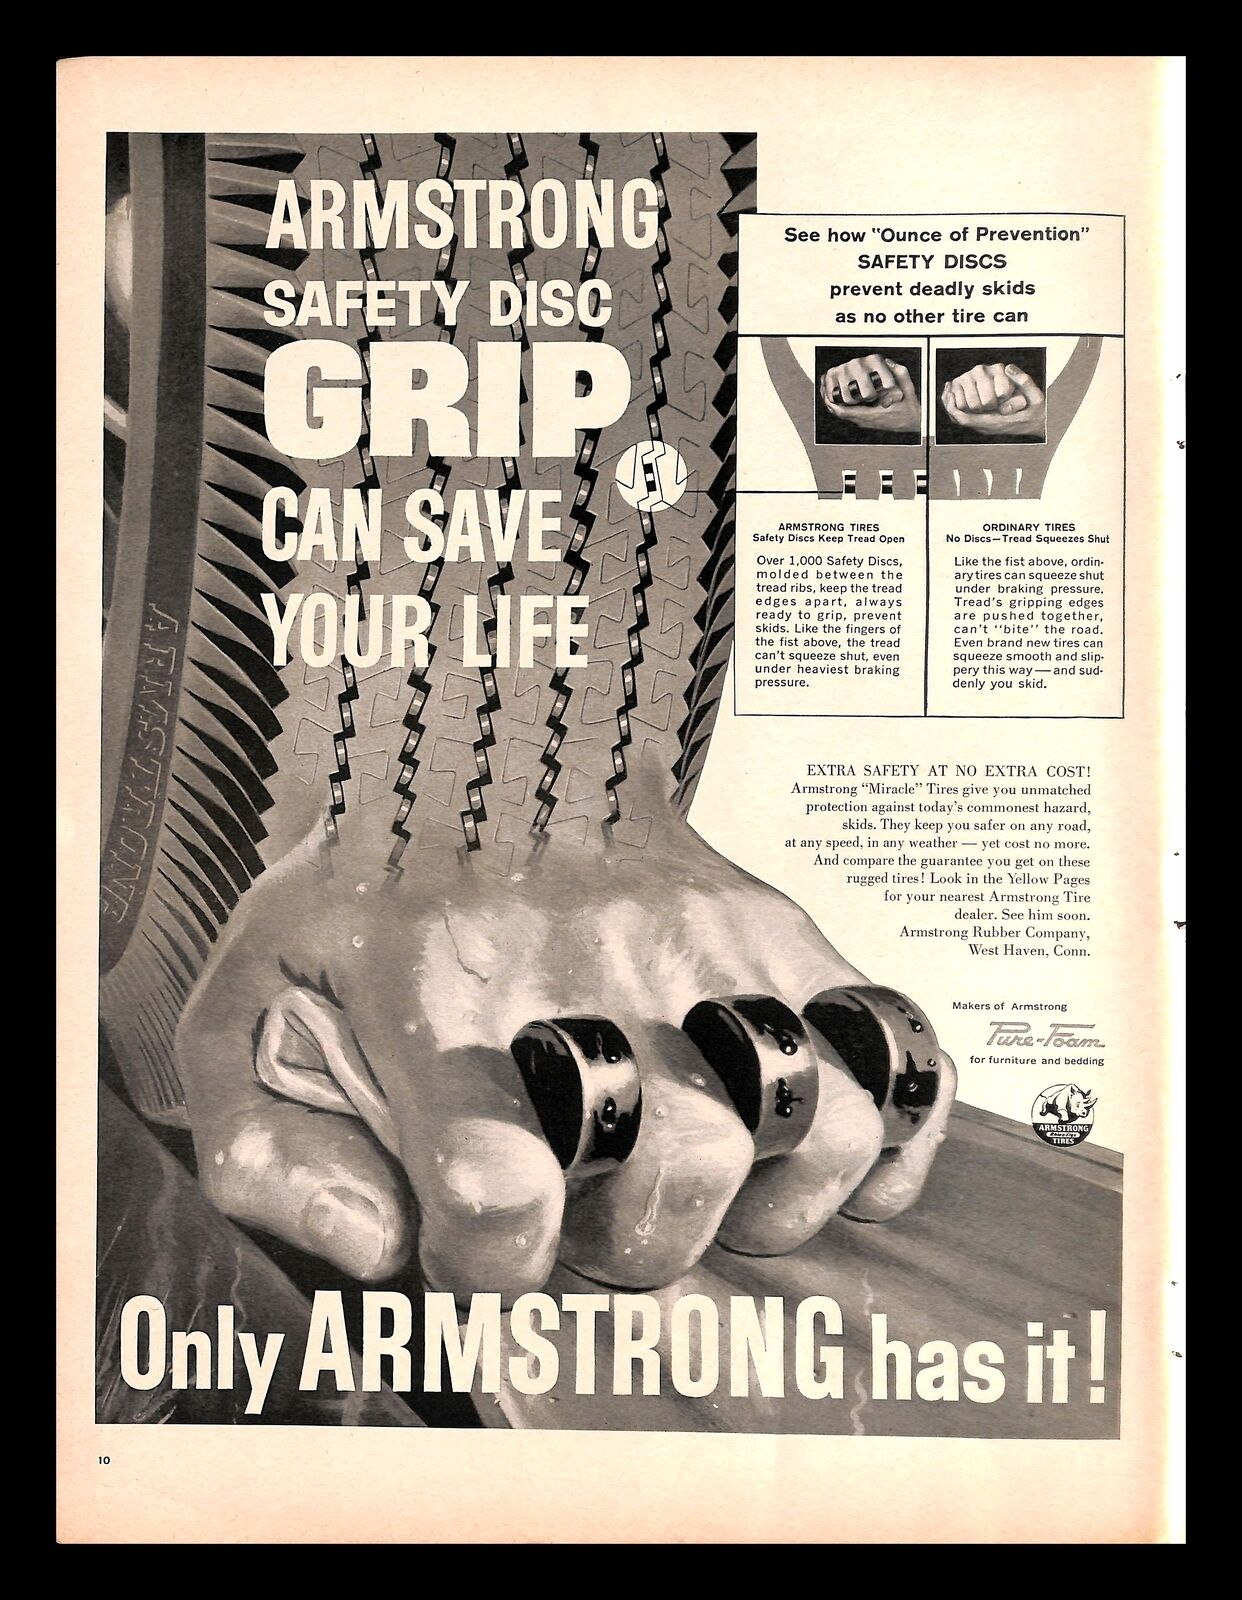 1959 Armstrong Safety Disc Grip Tires Vintage Print Ad Automobile Safety 1950s Ebay